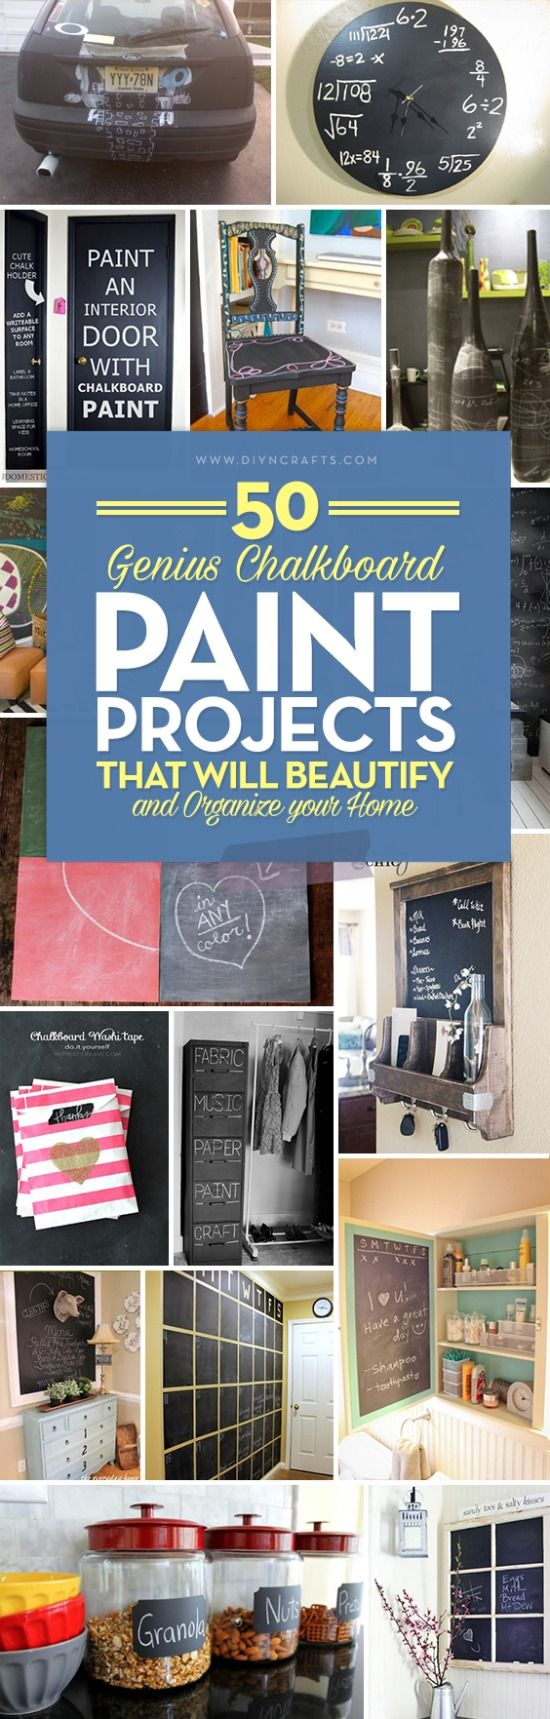 50 Genius Chalkboard Paint Projects That Will Beautify and Organize Your Home - Collection collected and curated by diyncrafts.com via @vanessacrafting